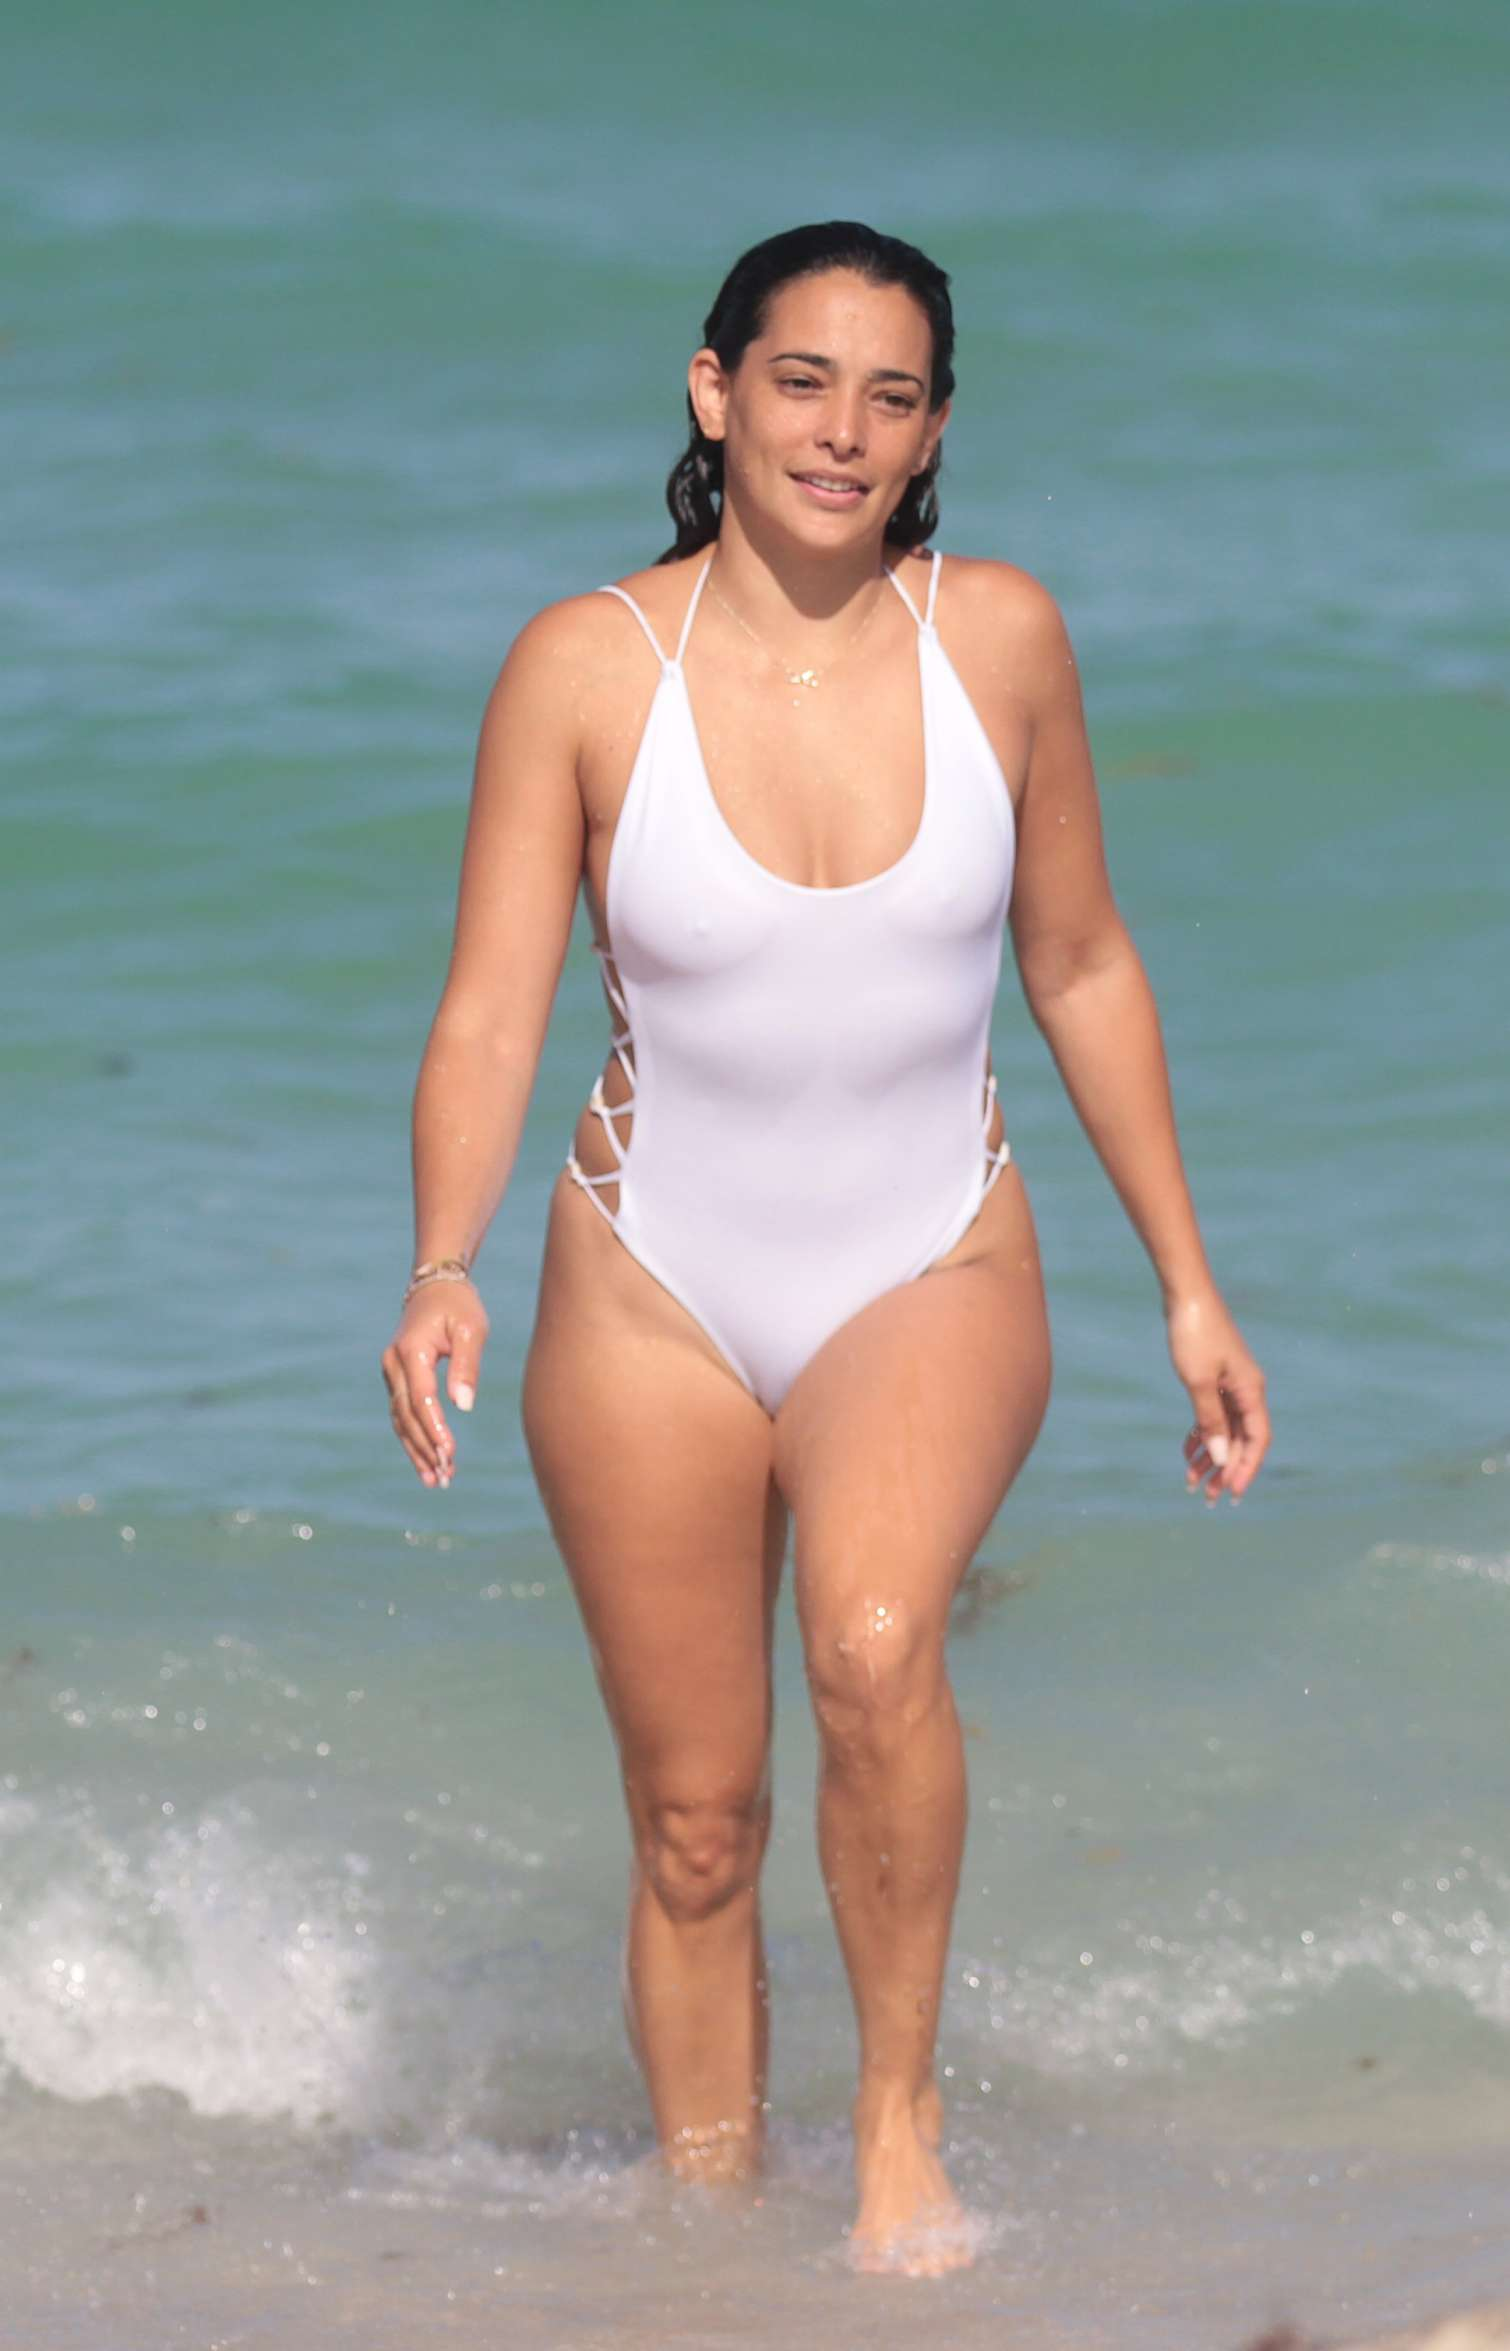 Natalie martinez shows off her swimsuit body in miami beach nude (86 photos), Ass Celebrites photos